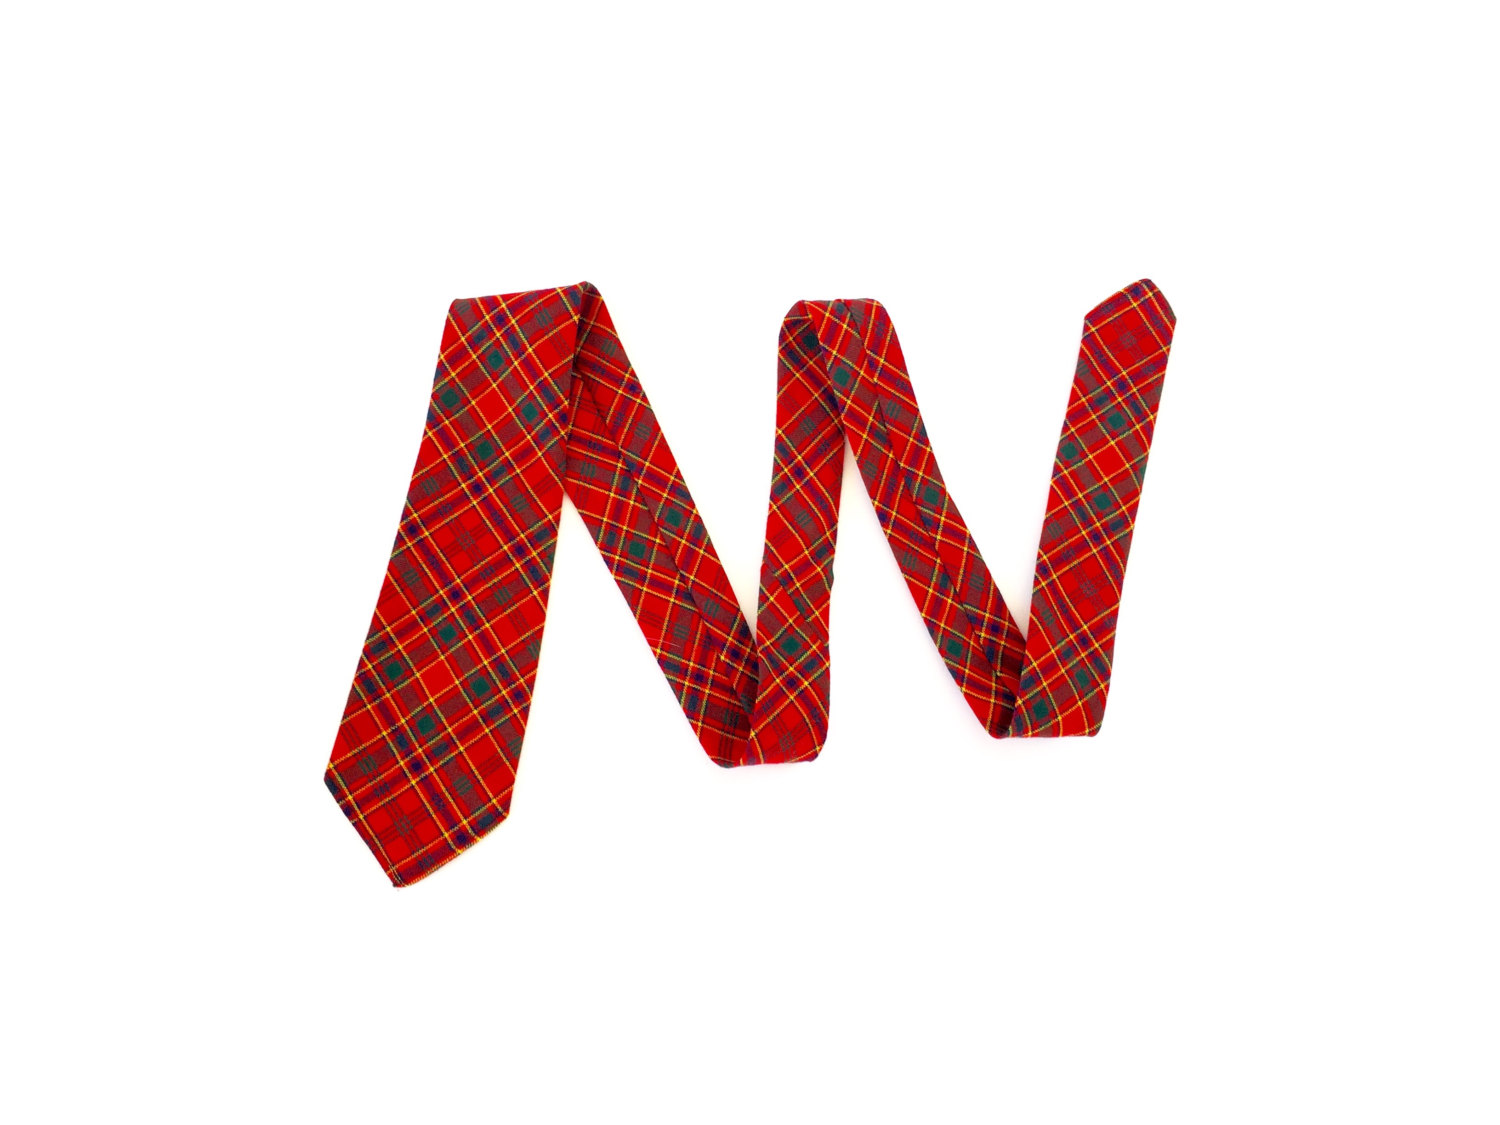 Vintage tie in Munro clan plaid